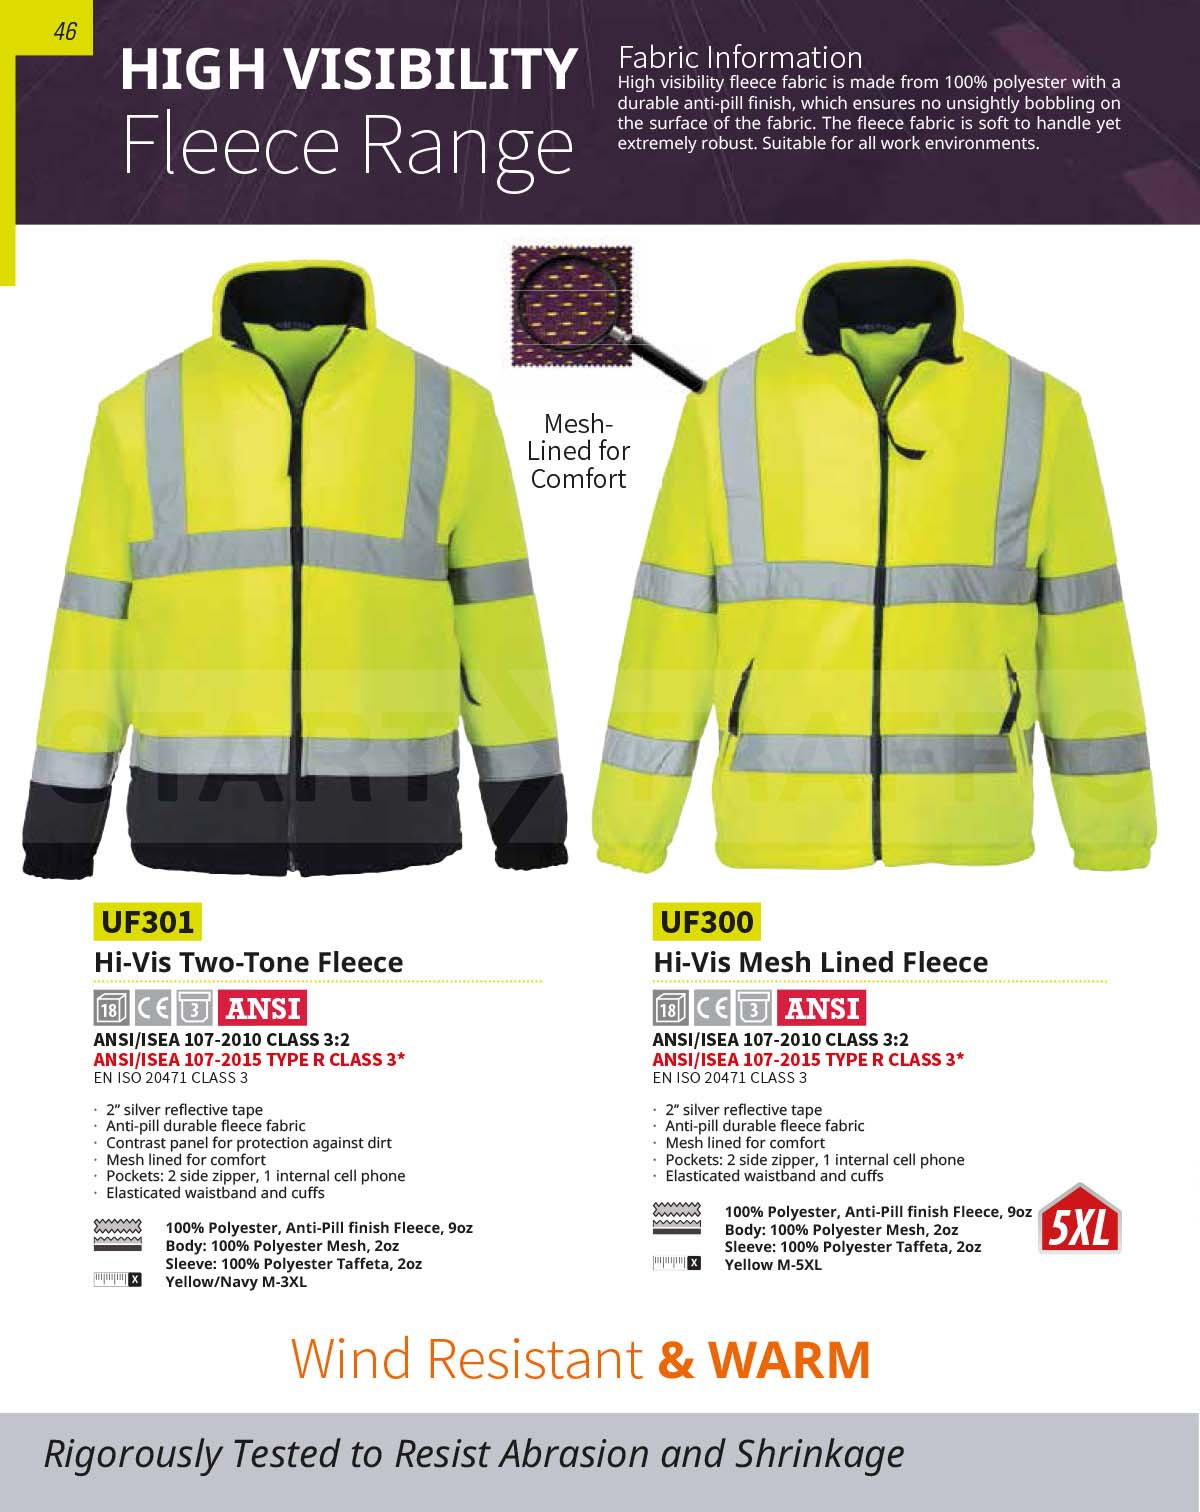 UF301 Two-Tone High Visibility Fleece